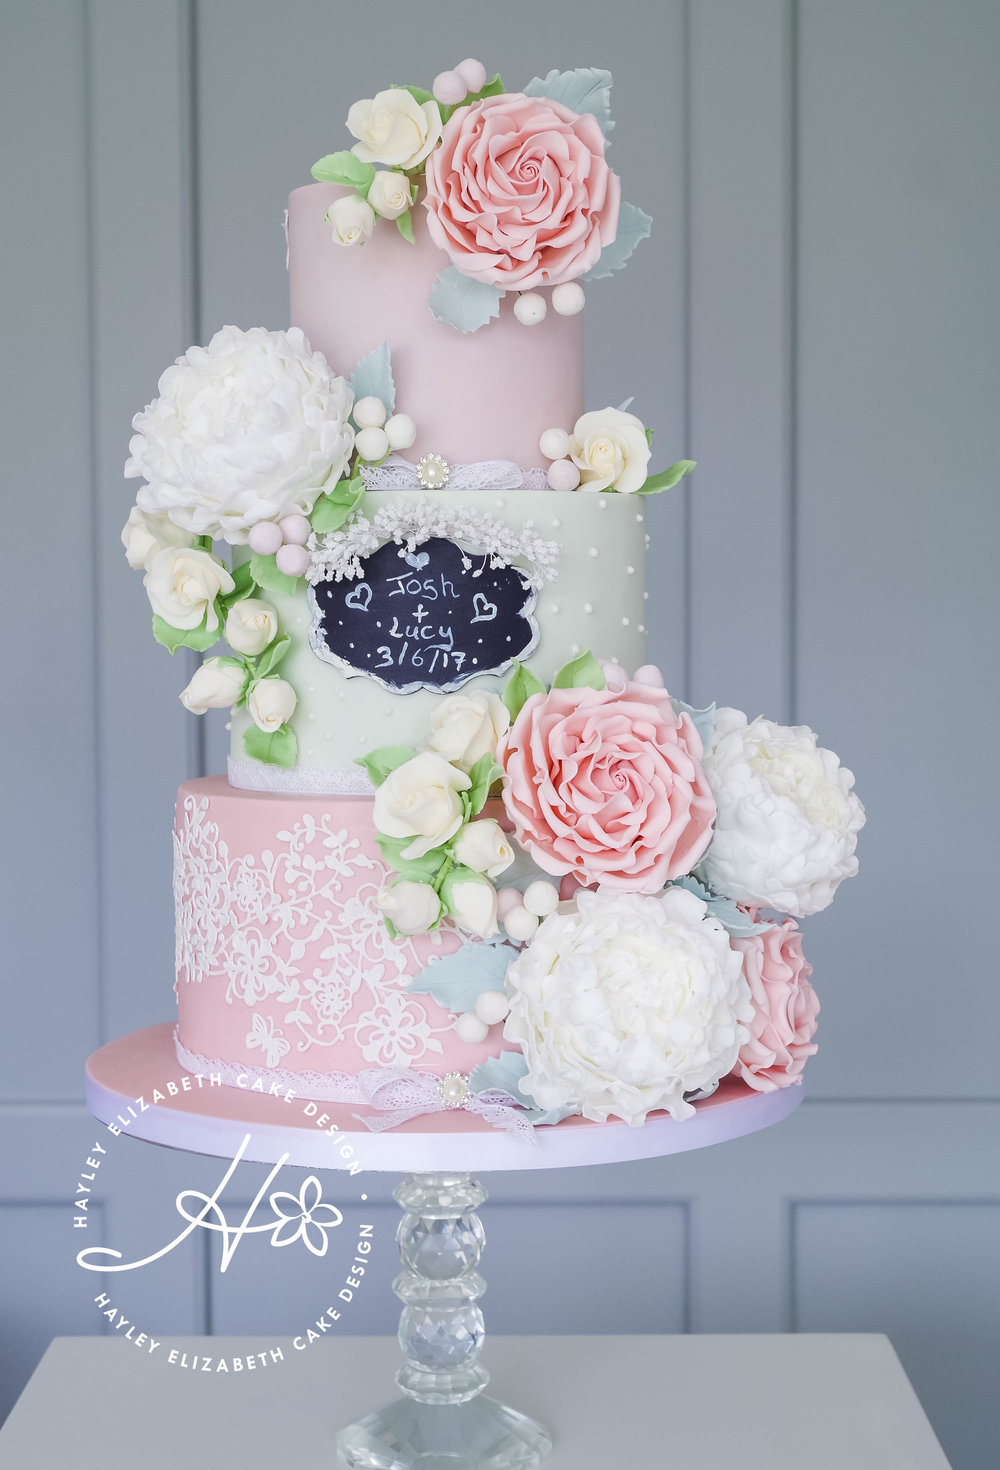 vintage-wedding-cake-with-peonies-roses-and-chalkboard.jpg